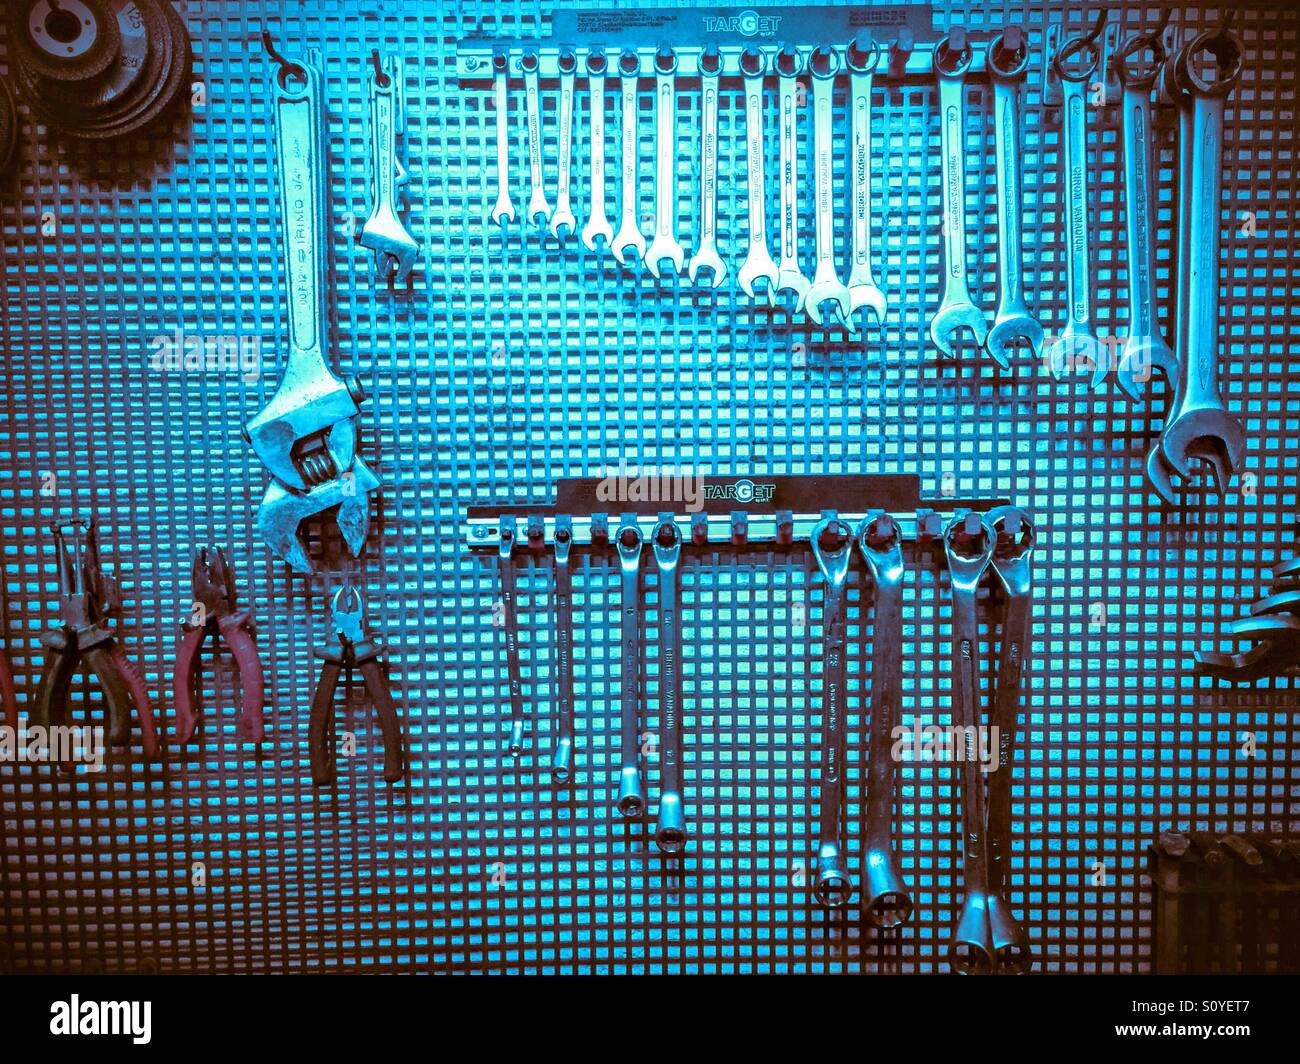 Assorted workshop tools on a pegboard. - Stock Image